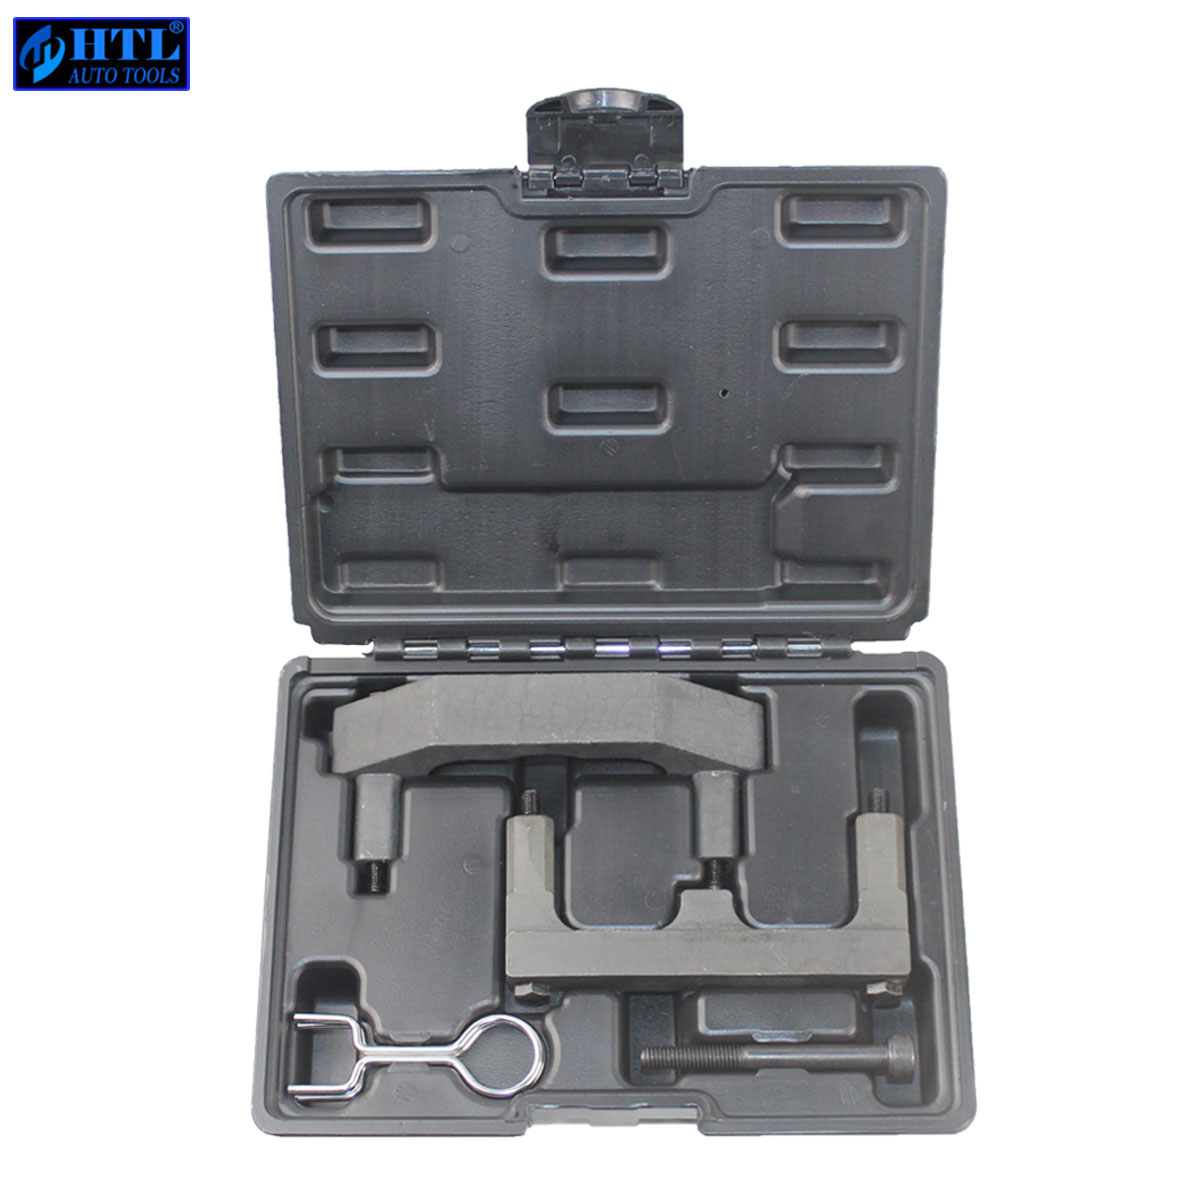 Engine Timing Tools For VW Audi A6 A8 S6 4 0L TFSI OEM Tool T40264 Camshaft